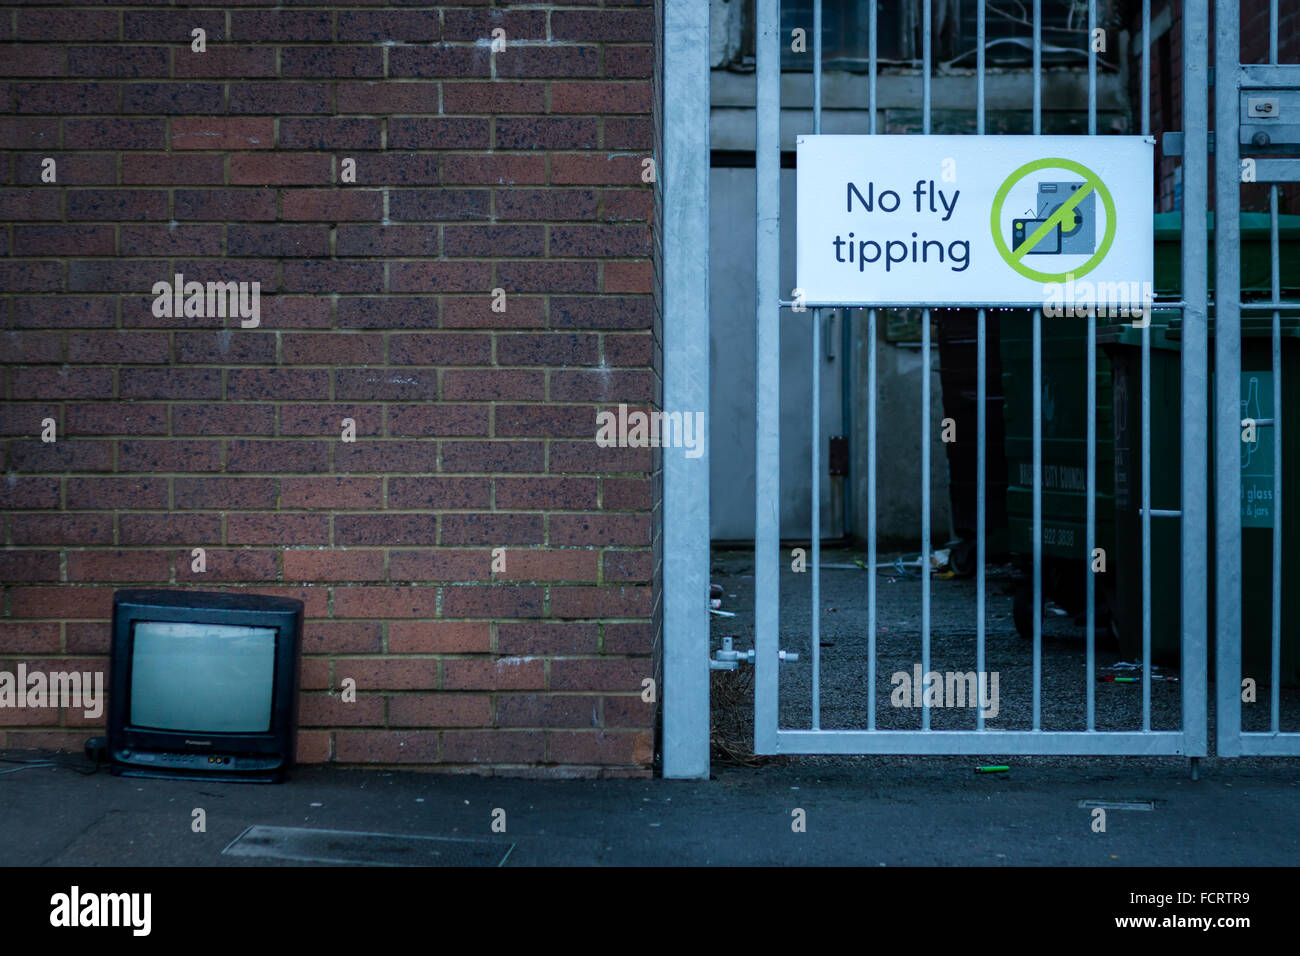 A TV dumped feet from a 'No fly tipping' sign - Stock Image